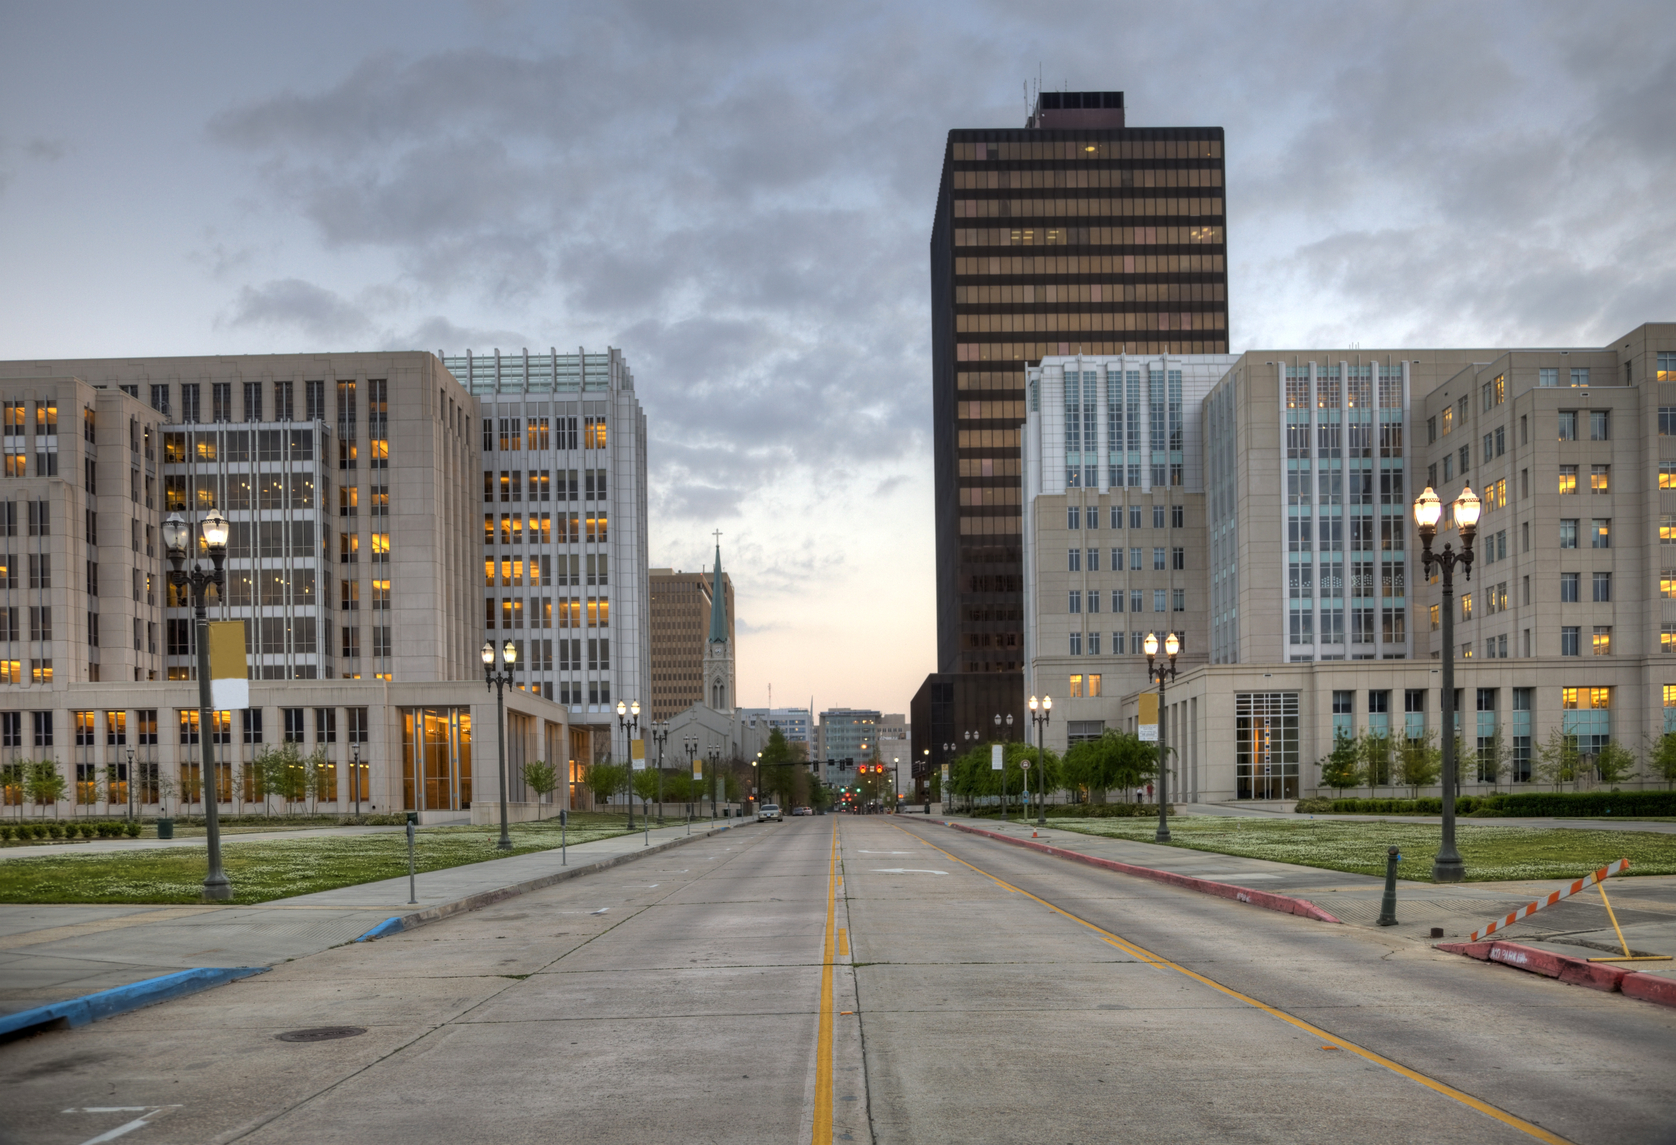 Baton Rouge is embroiled in a lot of controversies, but is it hurting economic development?